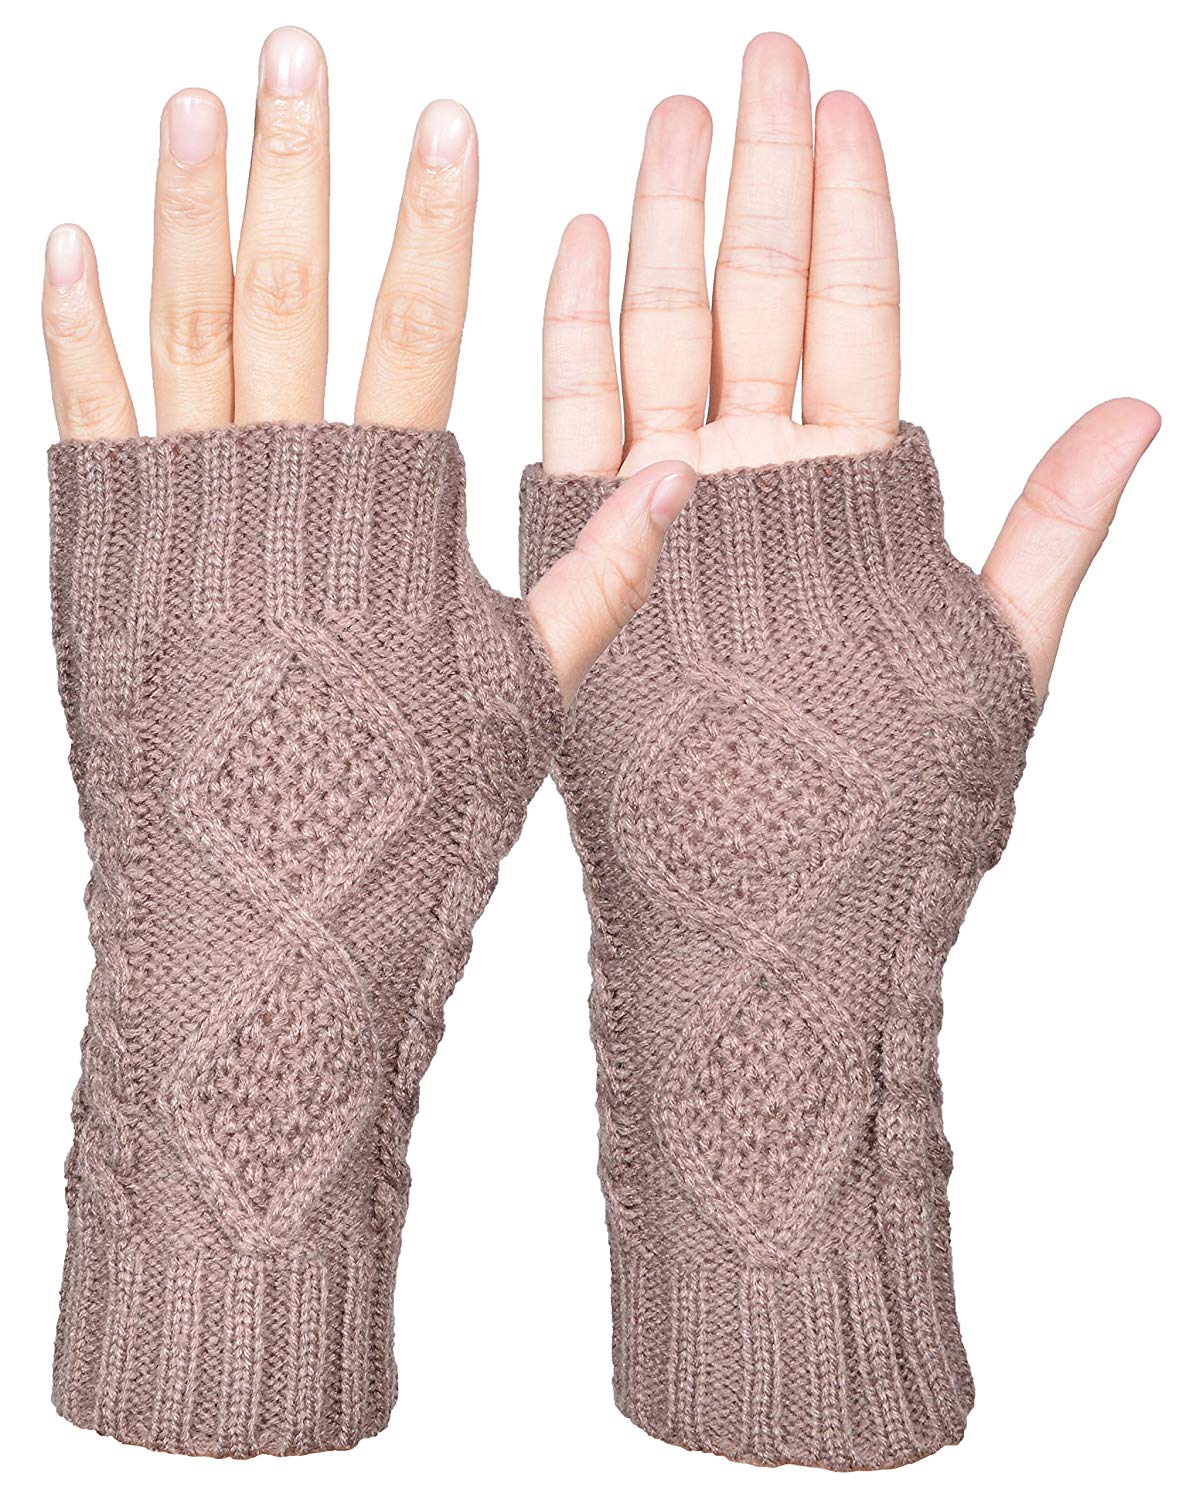 f7a5869af Outrip Womens Fingerless Gloves Winter Warm Knit Thumb Hole Mittens Arm  Warmers